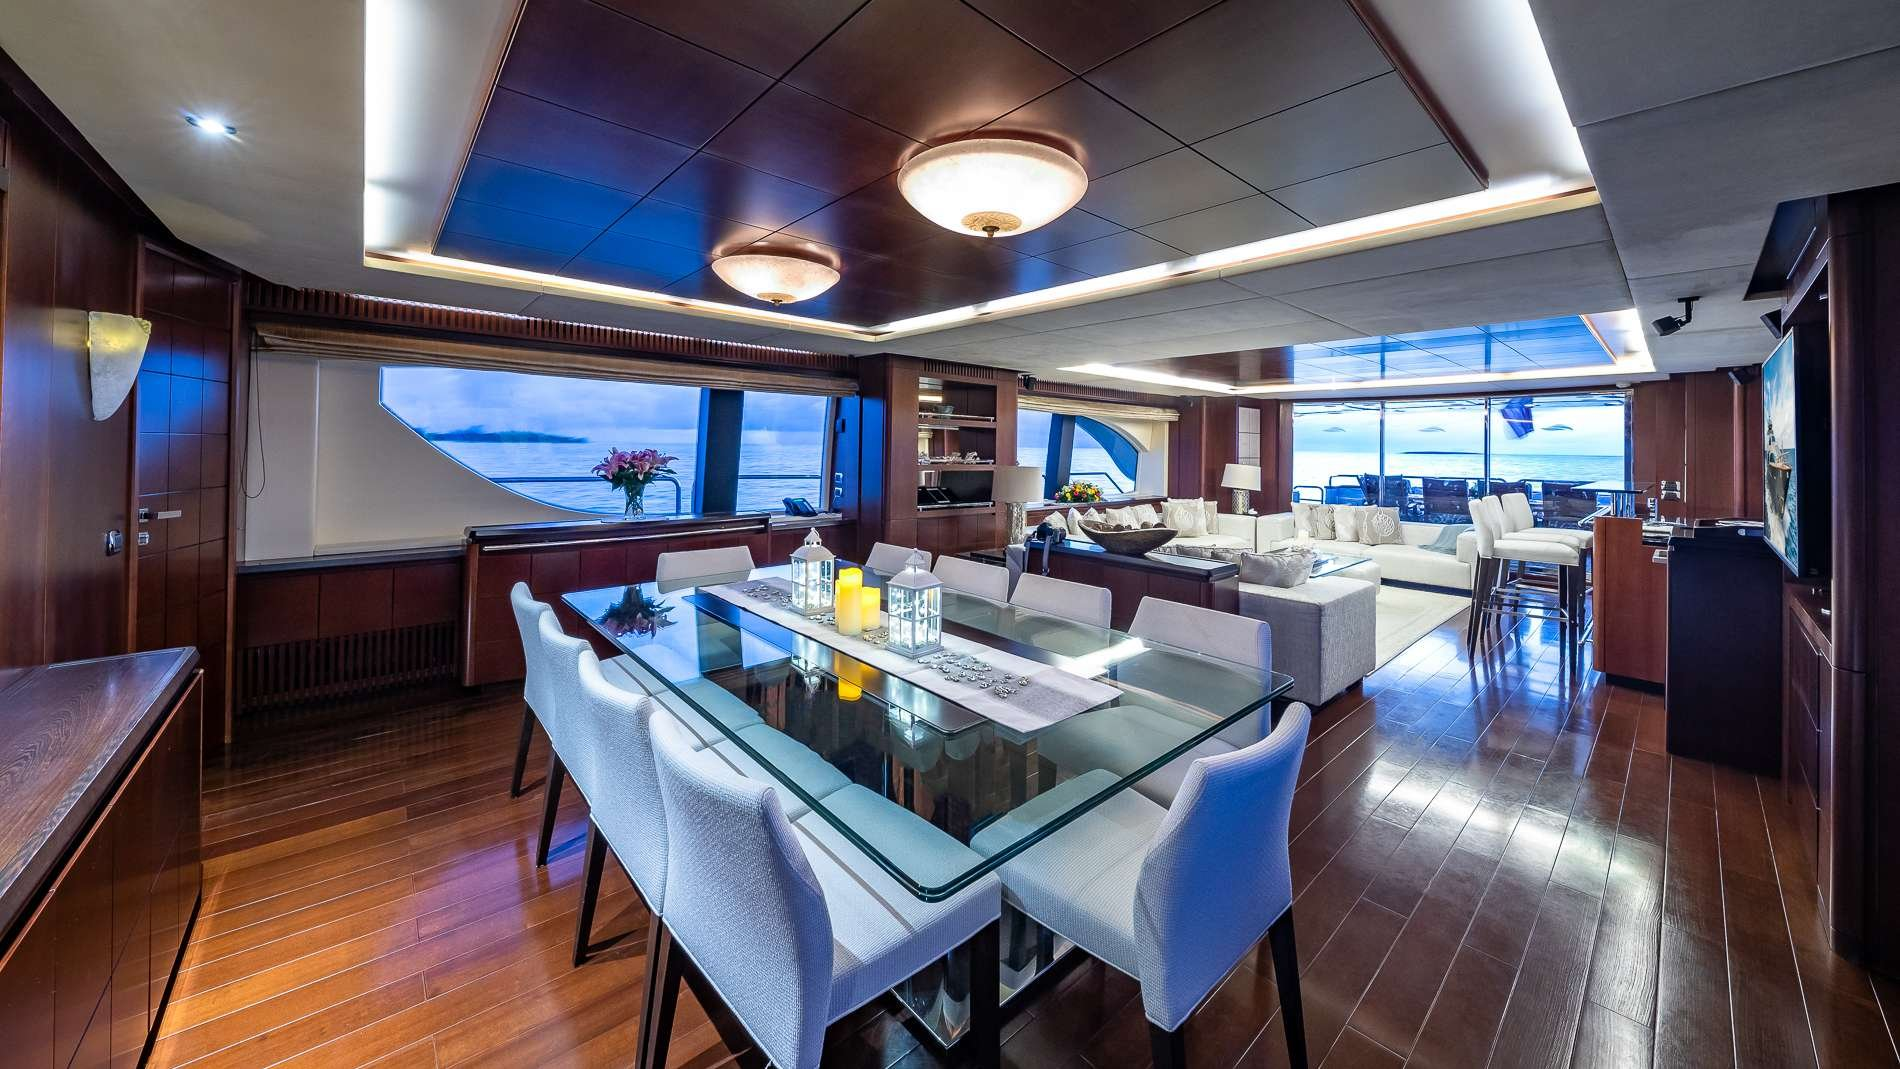 Motor Yacht 'TAIL LIGHTS' Salan Aft w Formal Dining, 12 PAX, 6 Crew, 116.00 Ft, 35.00 Meters, Built 2011, Azimut, Refit Year 2016